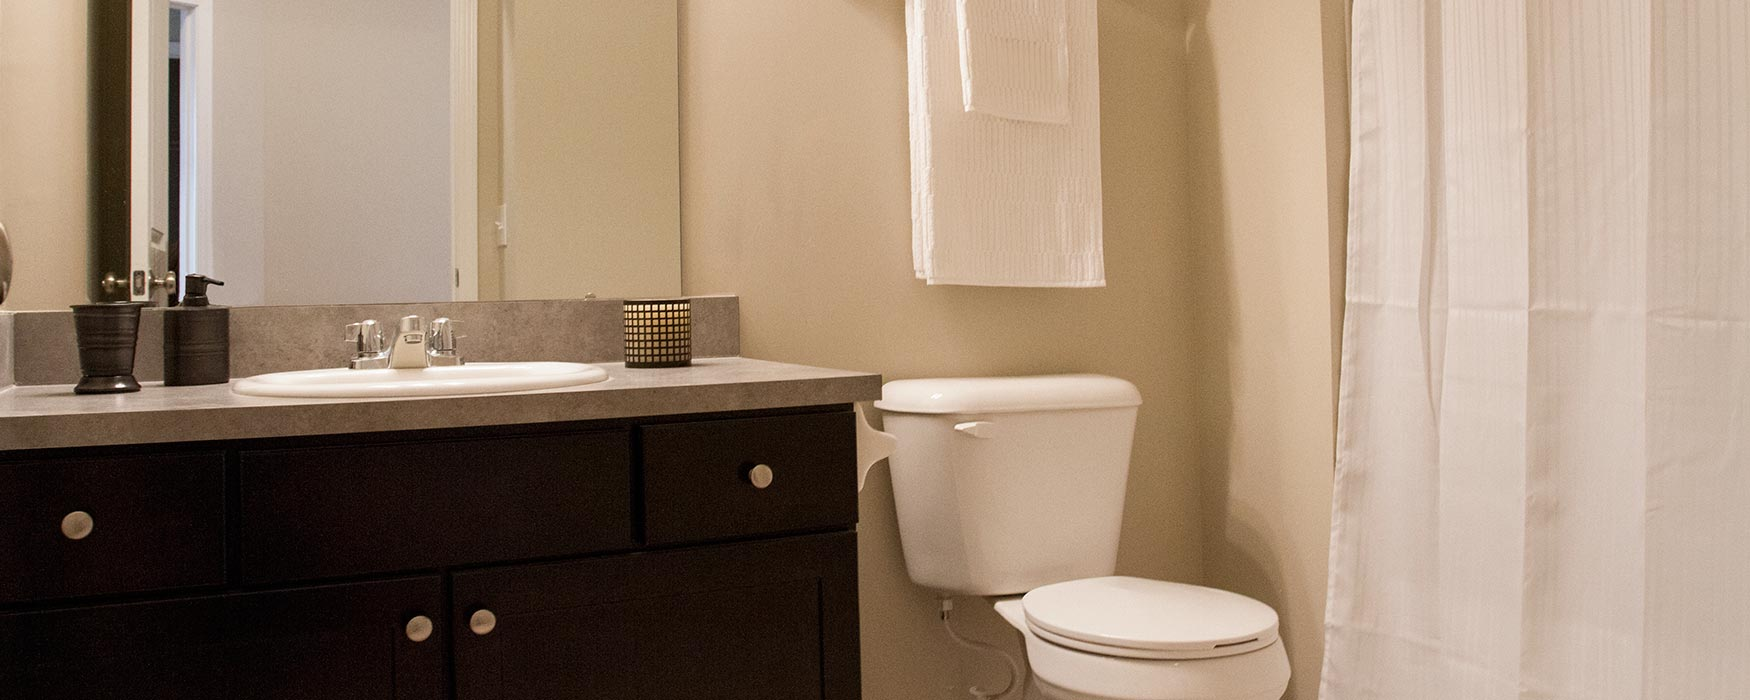 LC Preserve Crossing | Gahanna Apartments | Greystone II Bathroom